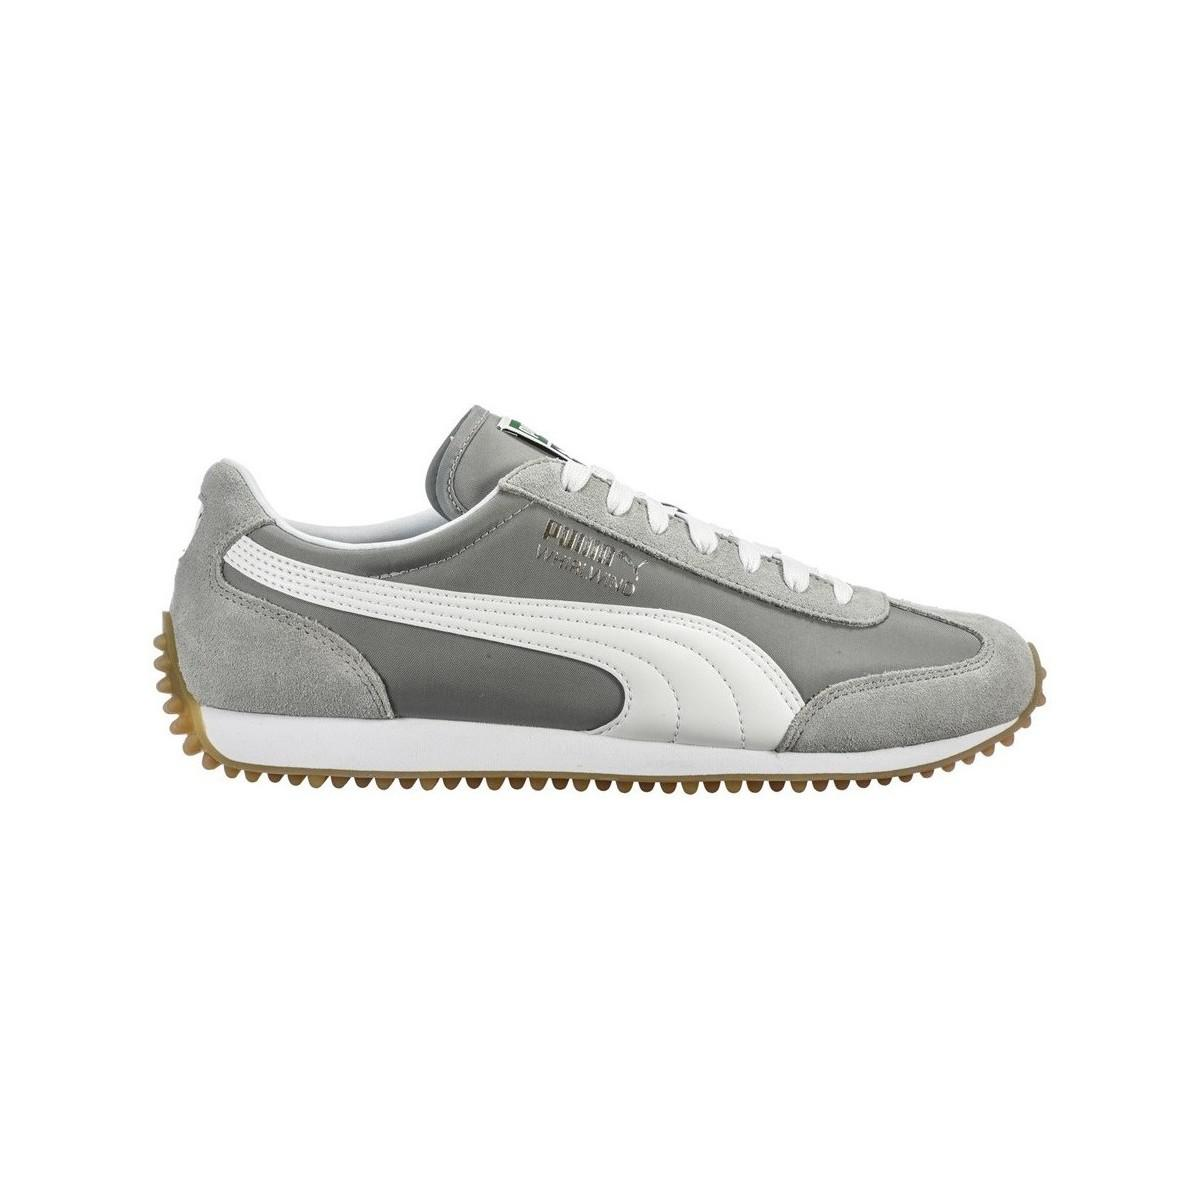 5db6f1640d27a7 Puma Whirlwind Classic Men s Shoes (trainers) In Grey in Gray - Lyst